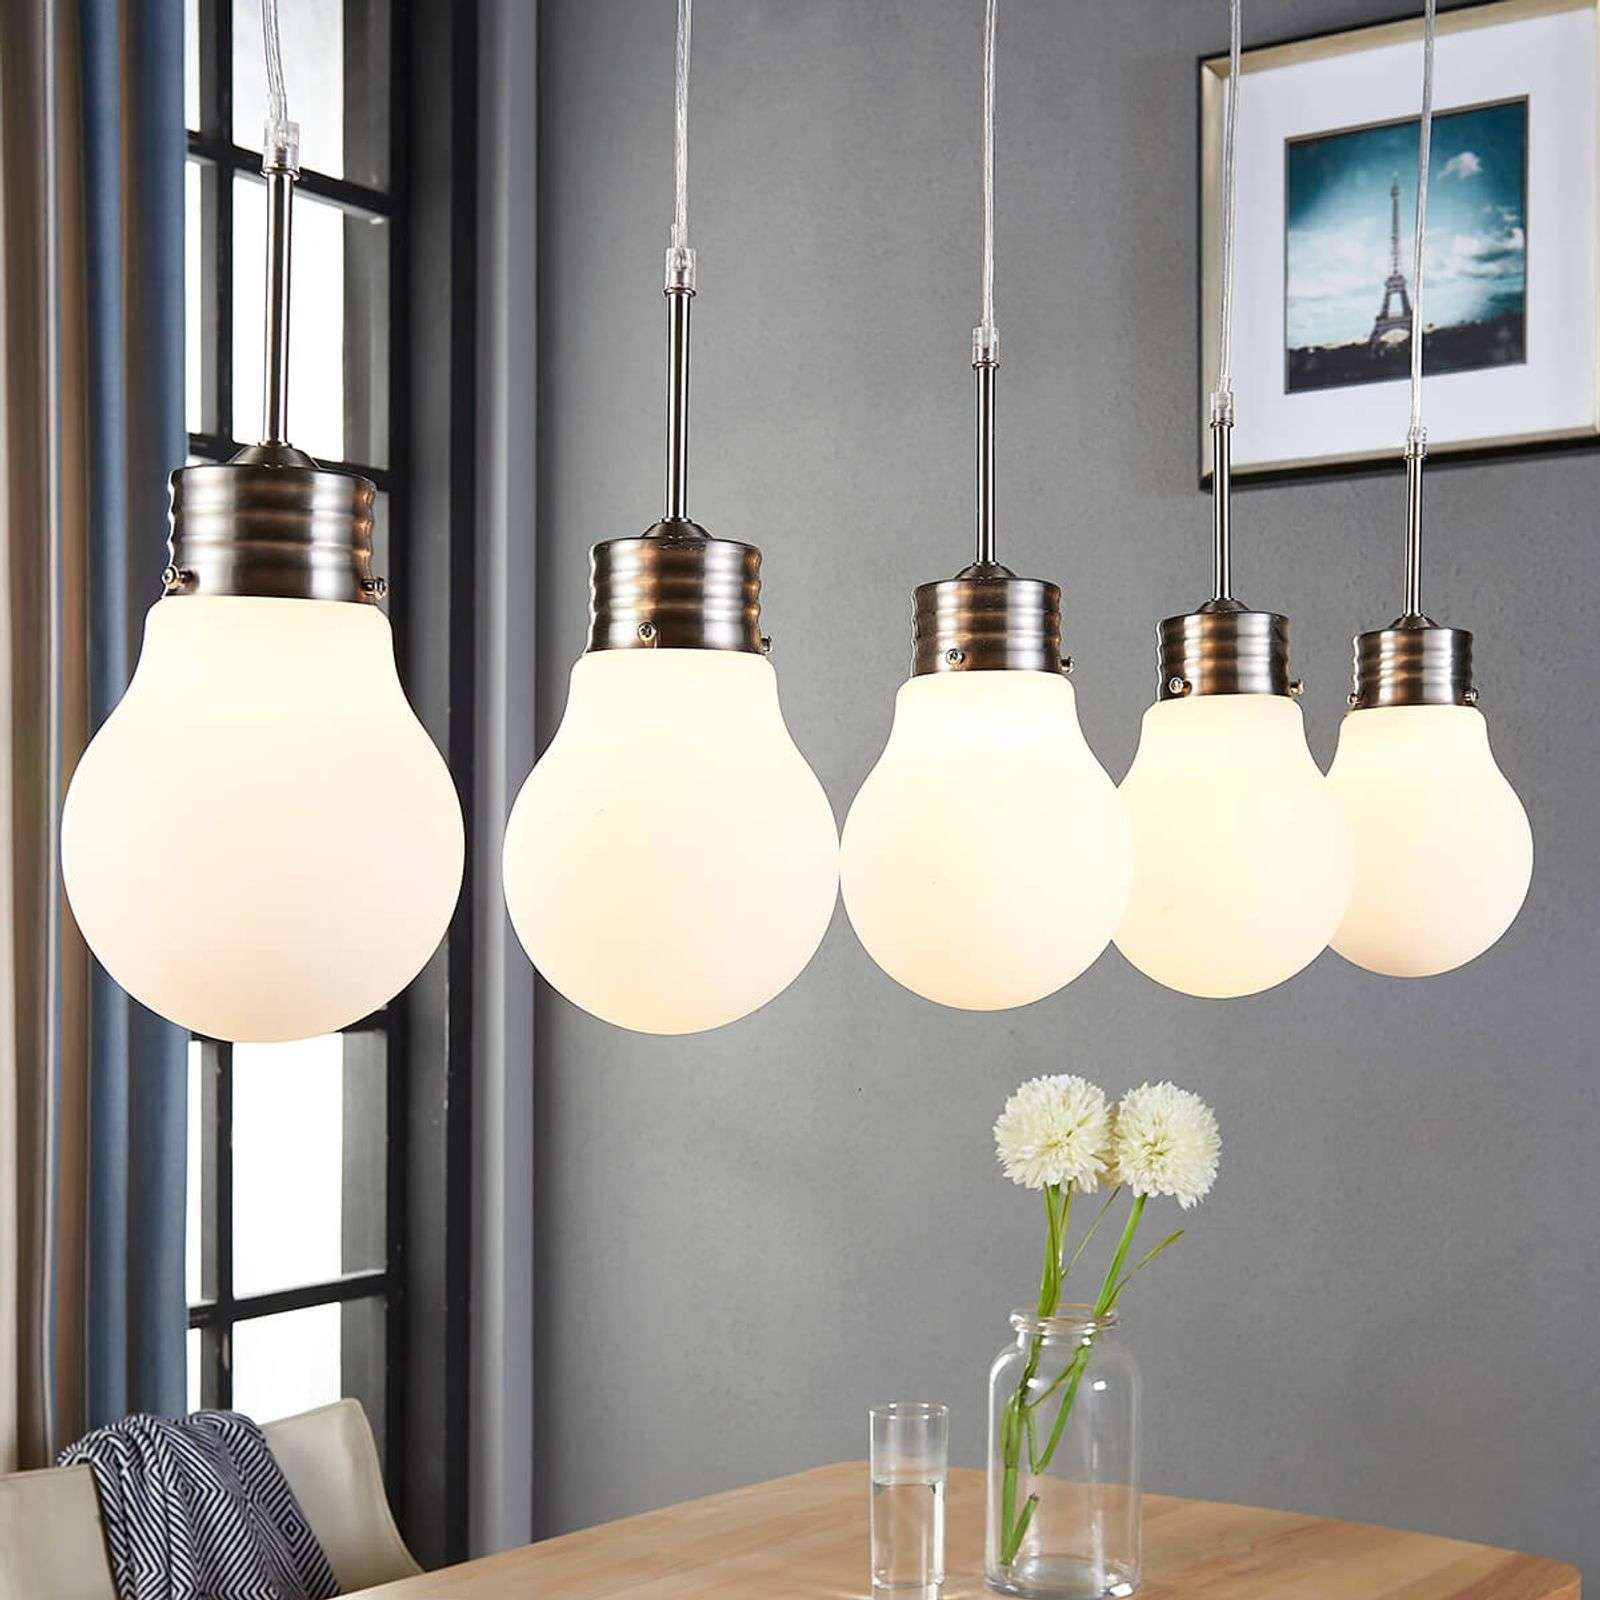 5 lampes Suspension Bado réglable par interrupteur